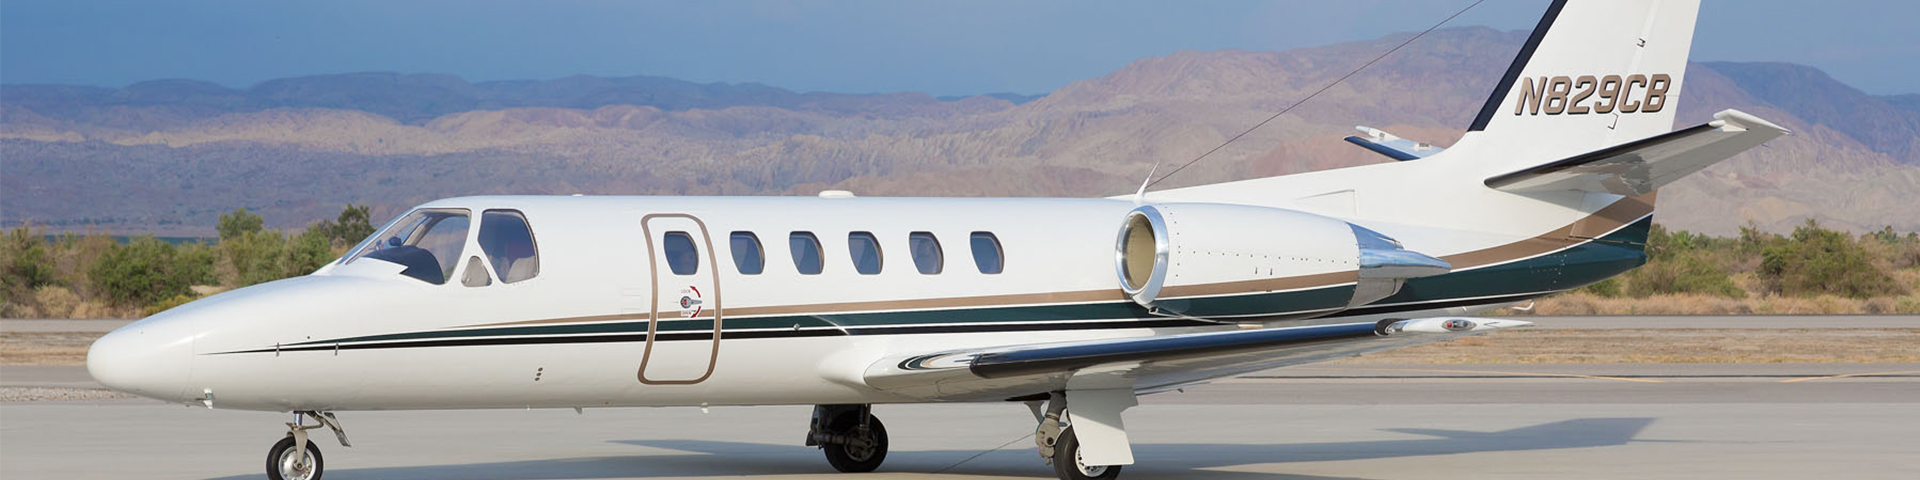 Citation Bravo1 - Citation Bravo Private Jet